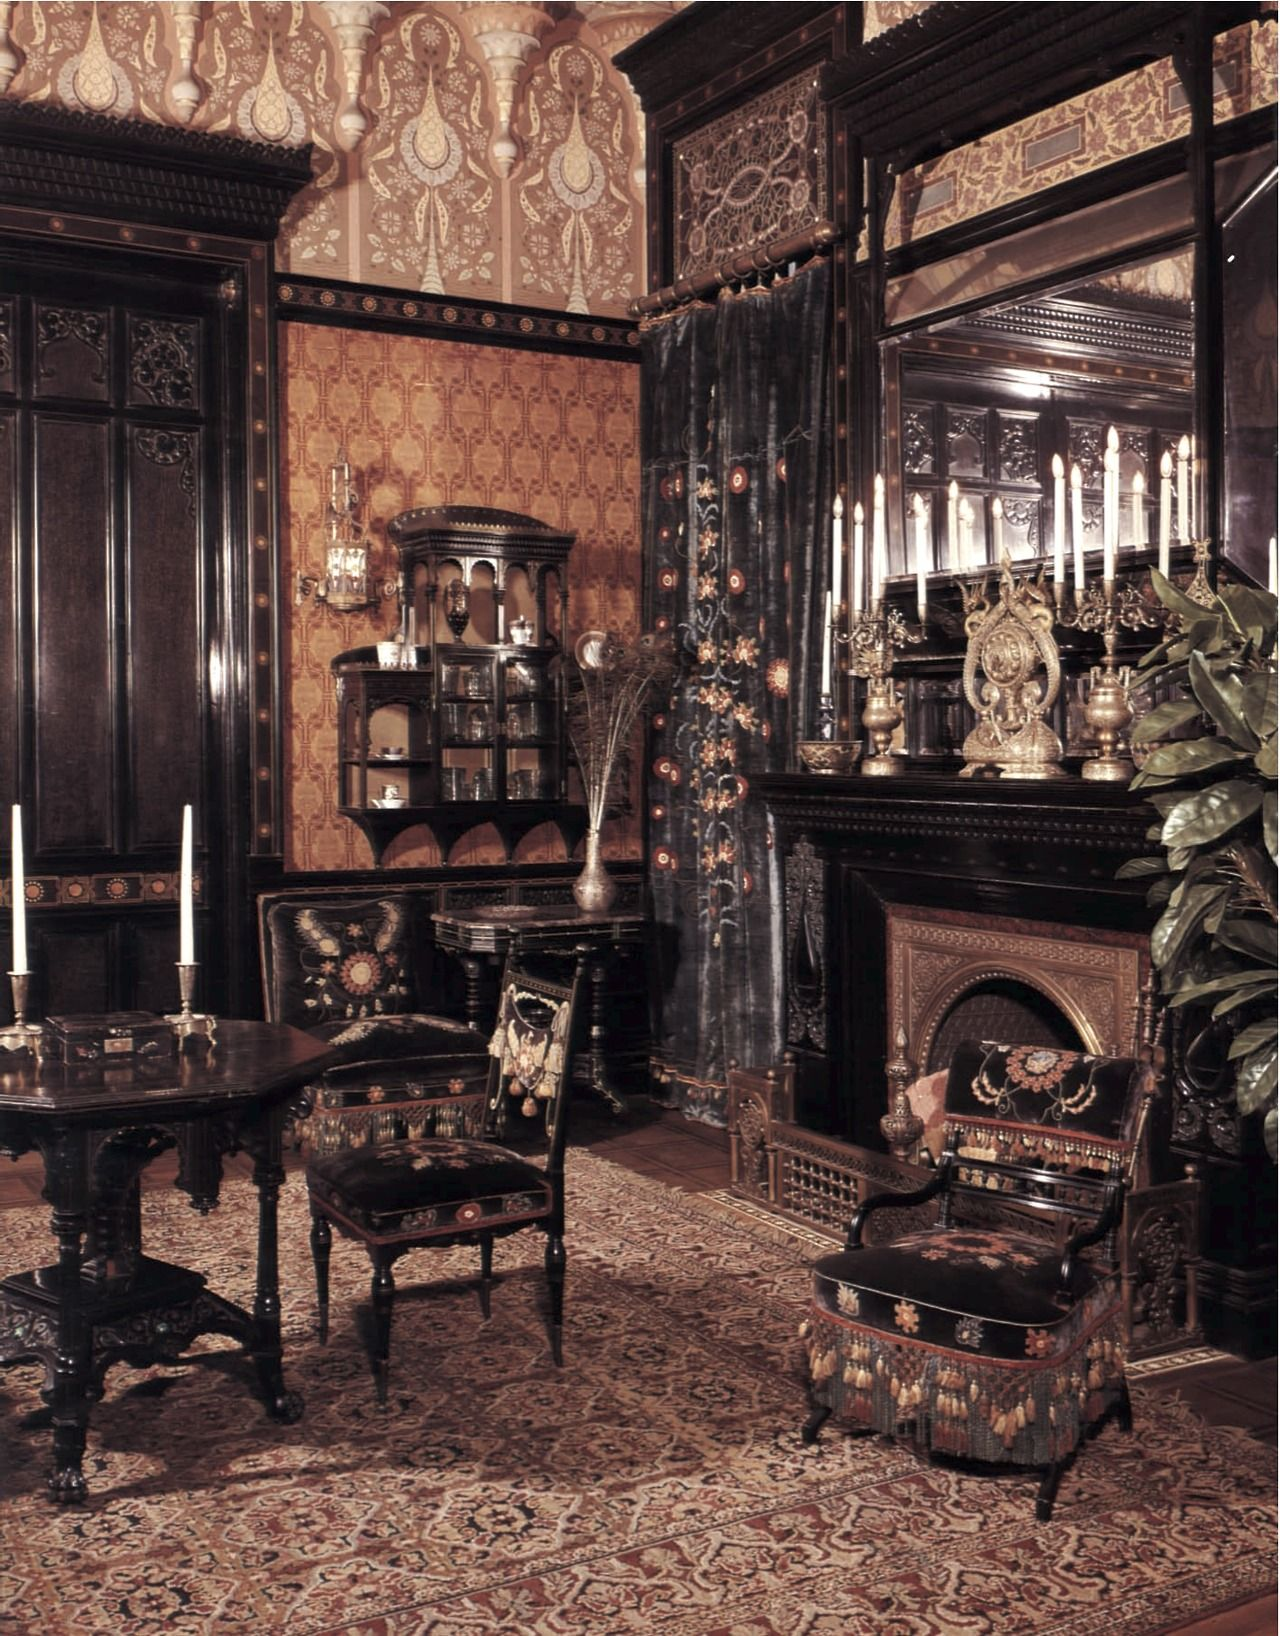 smoking parlor john d rockefeller house new york ca 1880 smoking parlor john d rockefeller house new york ca 1880